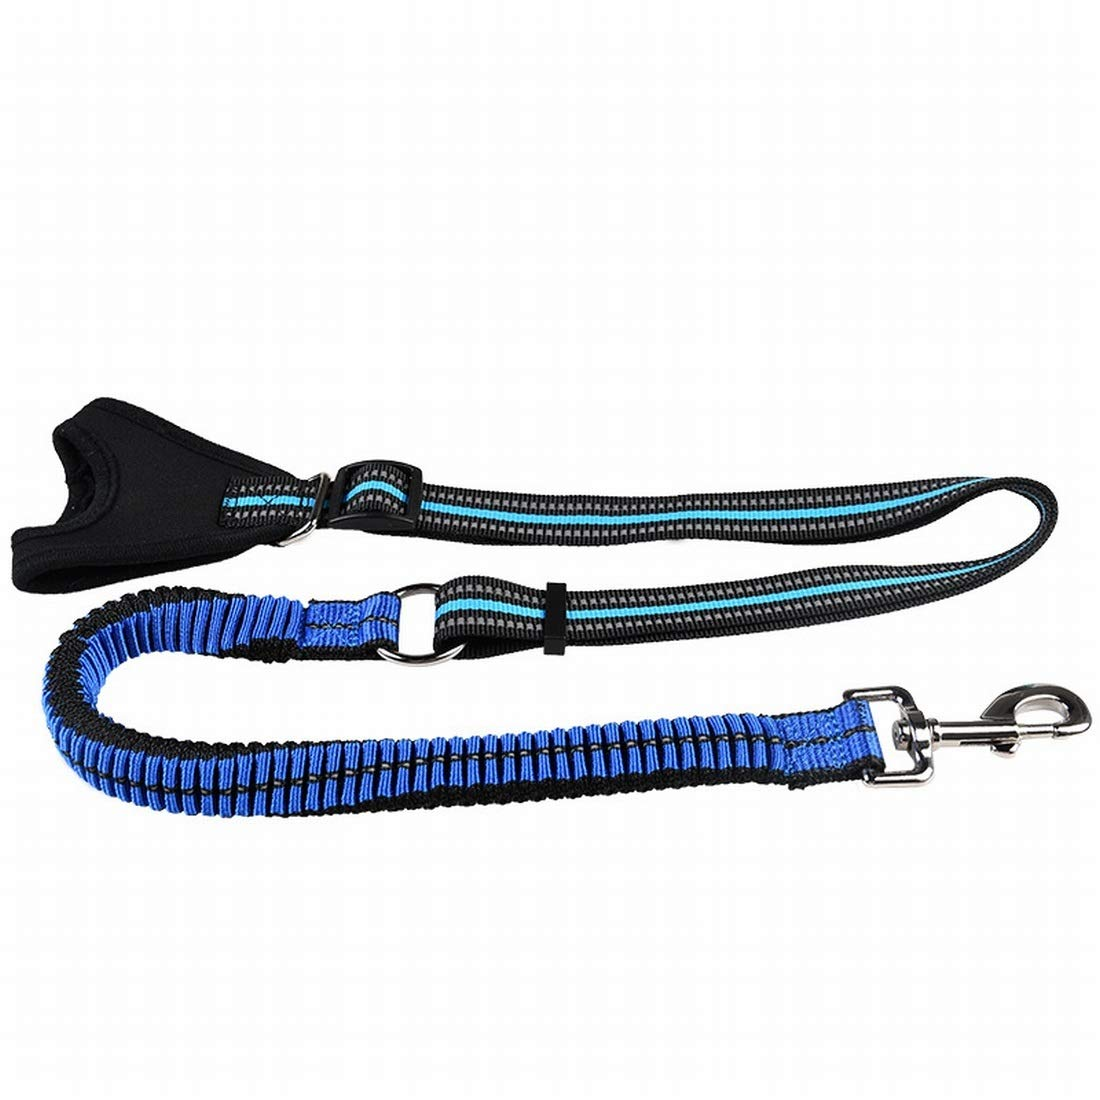 bluee Large bluee Large XIAMEND Pet Dog Hand-held Explosion-Proof Traction Rope, Reflective Anti-Collision Traction Rope (color   bluee, Size   L)